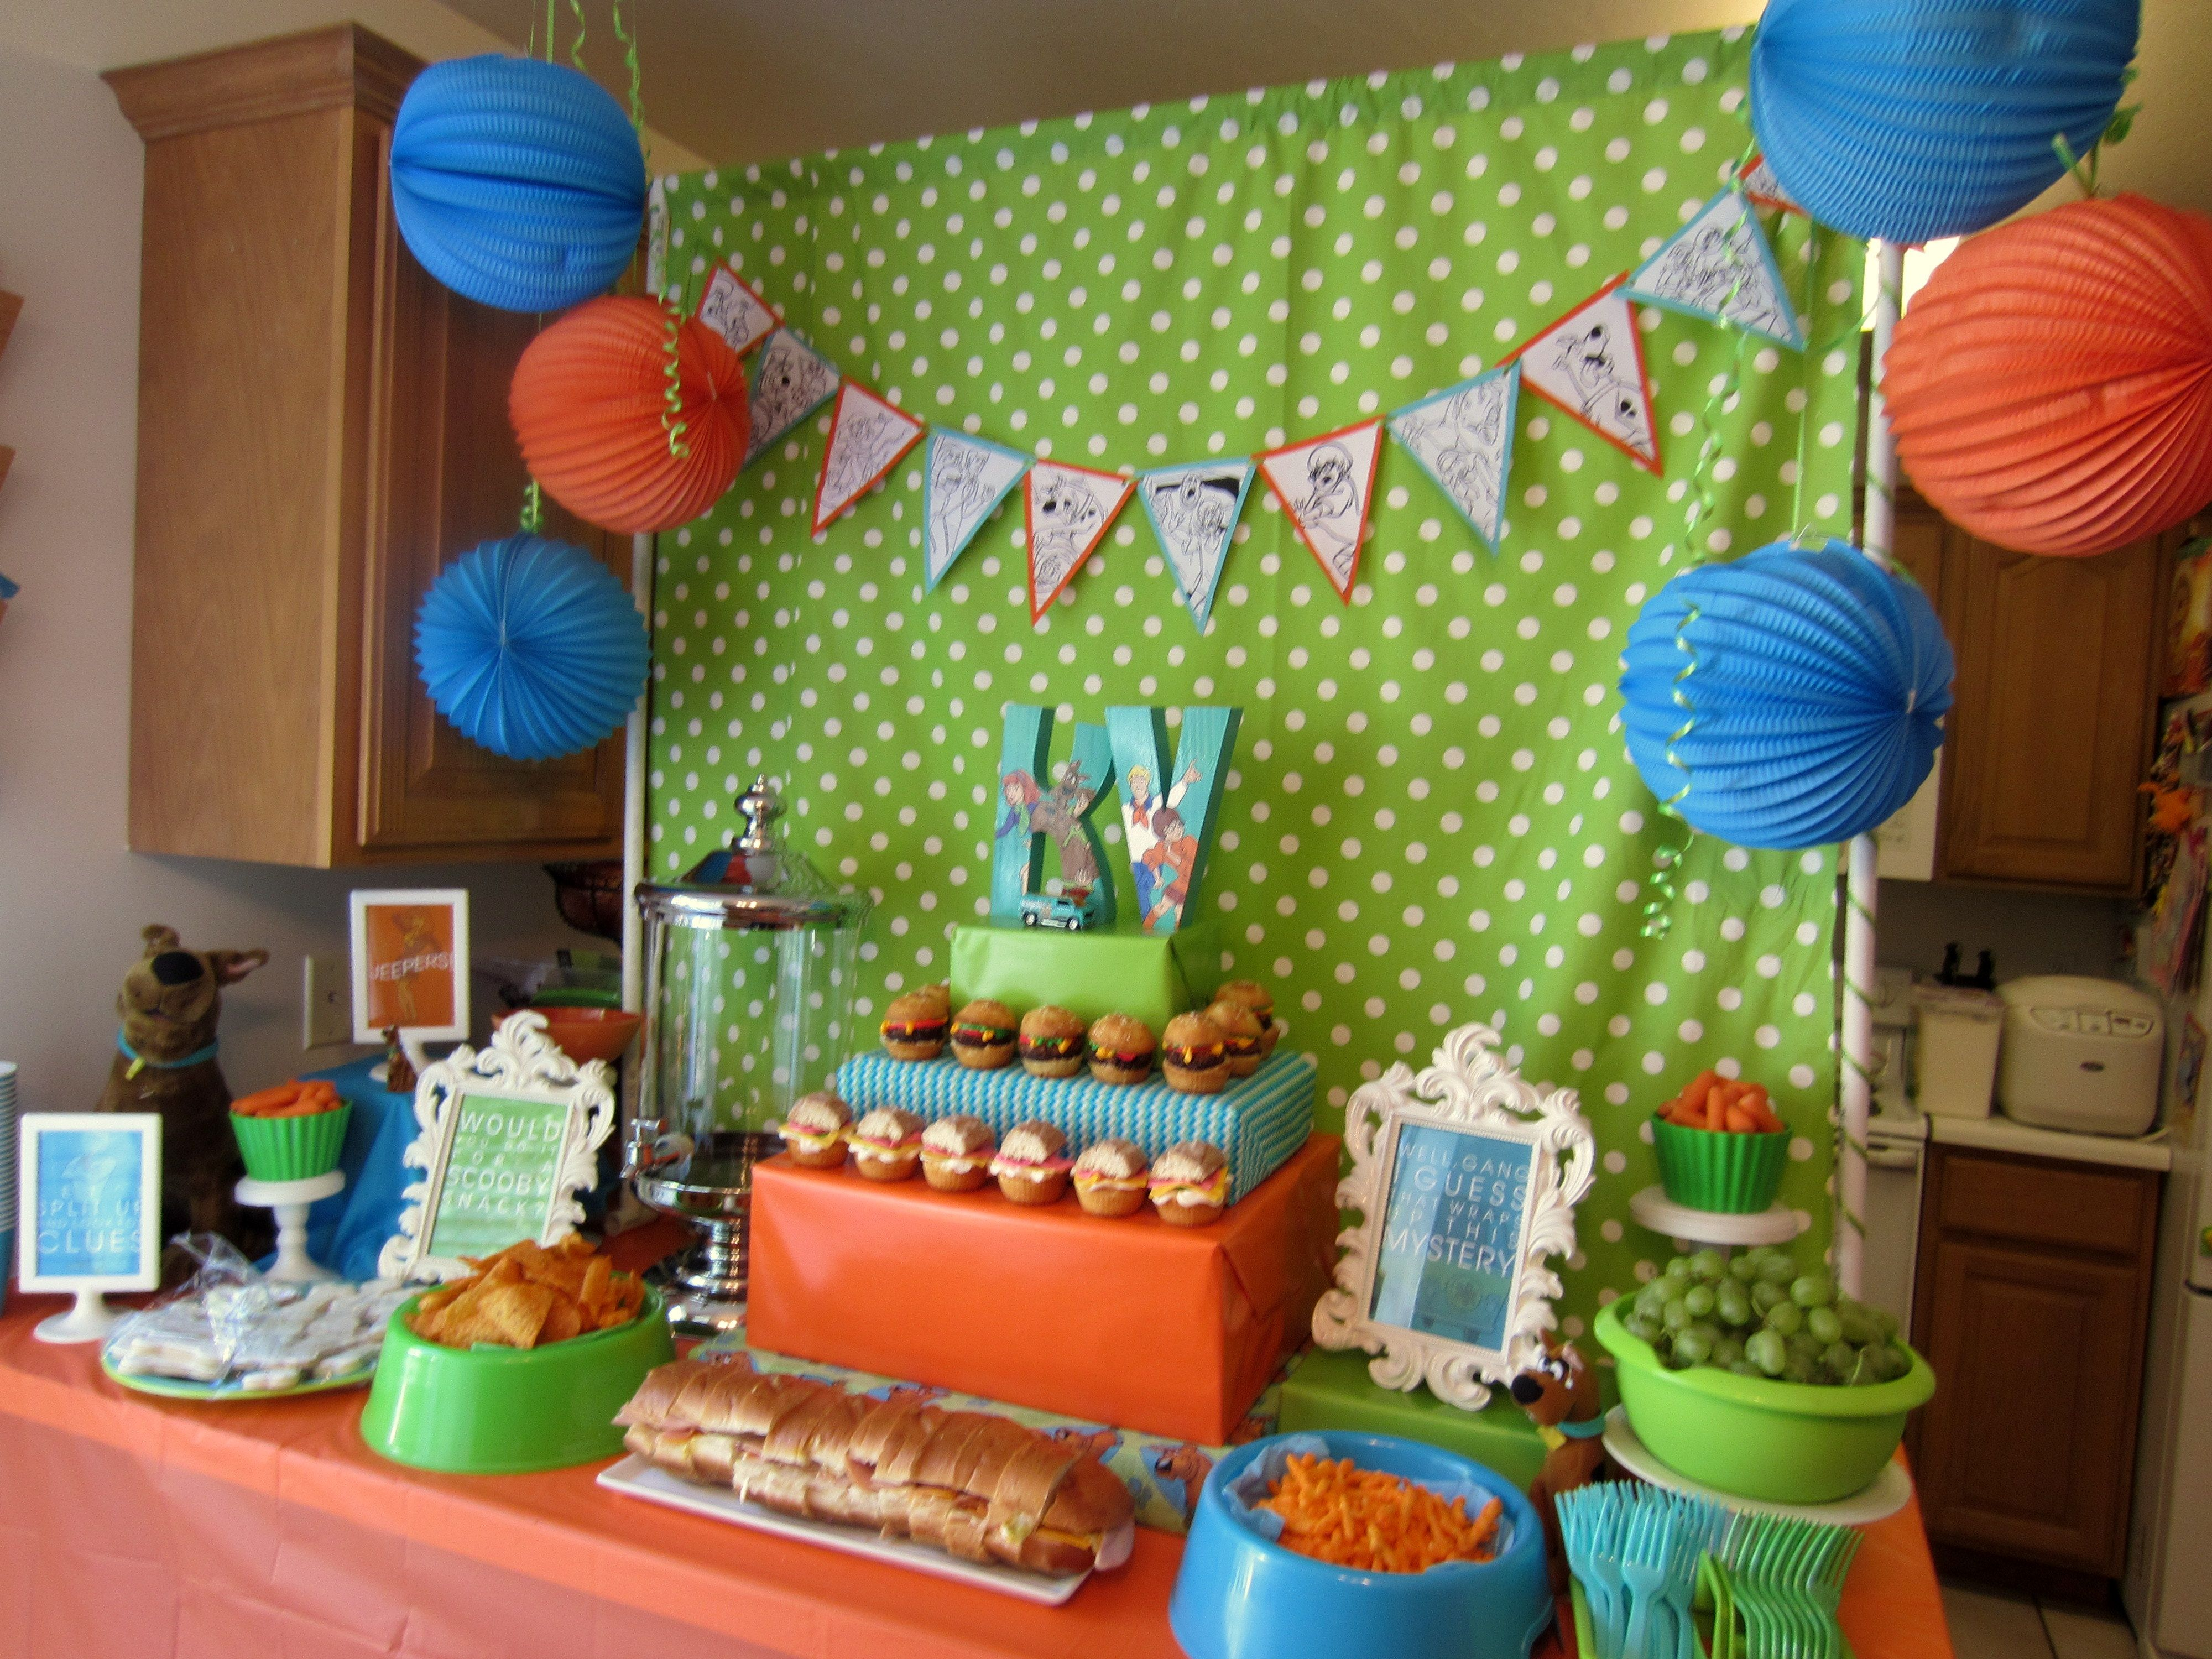 If You Have Ever Been Universal Orlando Florida Resort Then Know That Scooby Doo A Favorite There Here Are Some Fun Birthday Party Ideas